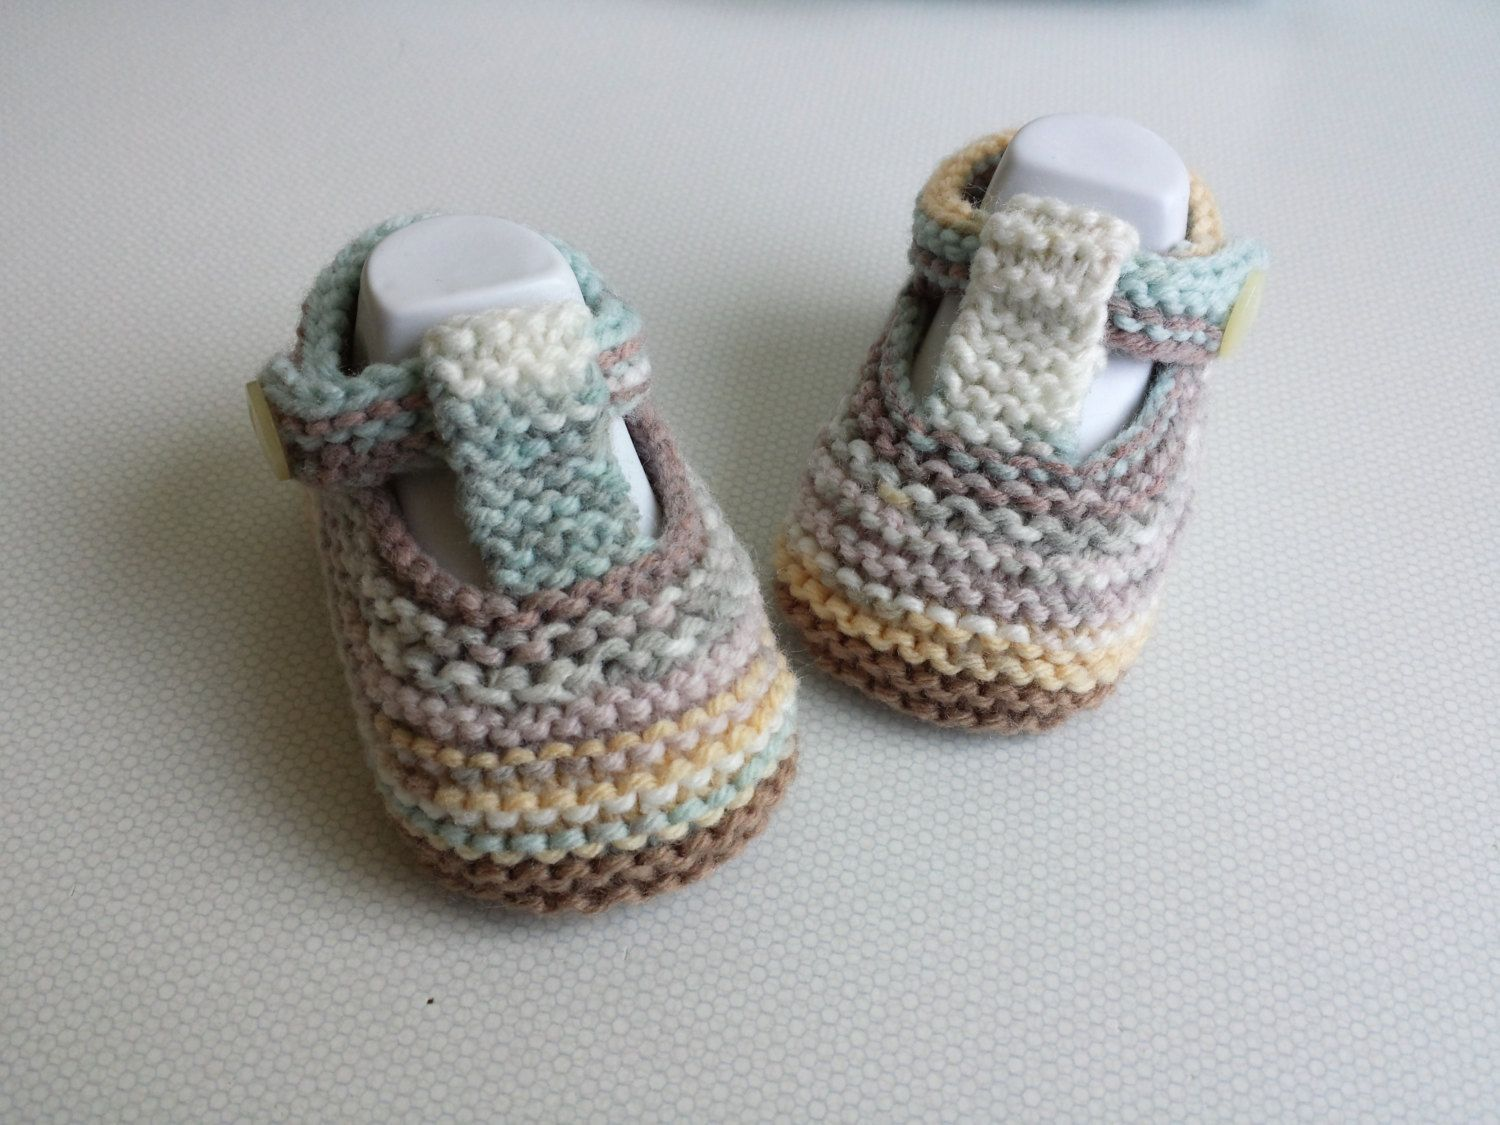 48fa51ecfa89 Hand knitted Newborn baby booties by xKnotSewPrisca on Etsy ...